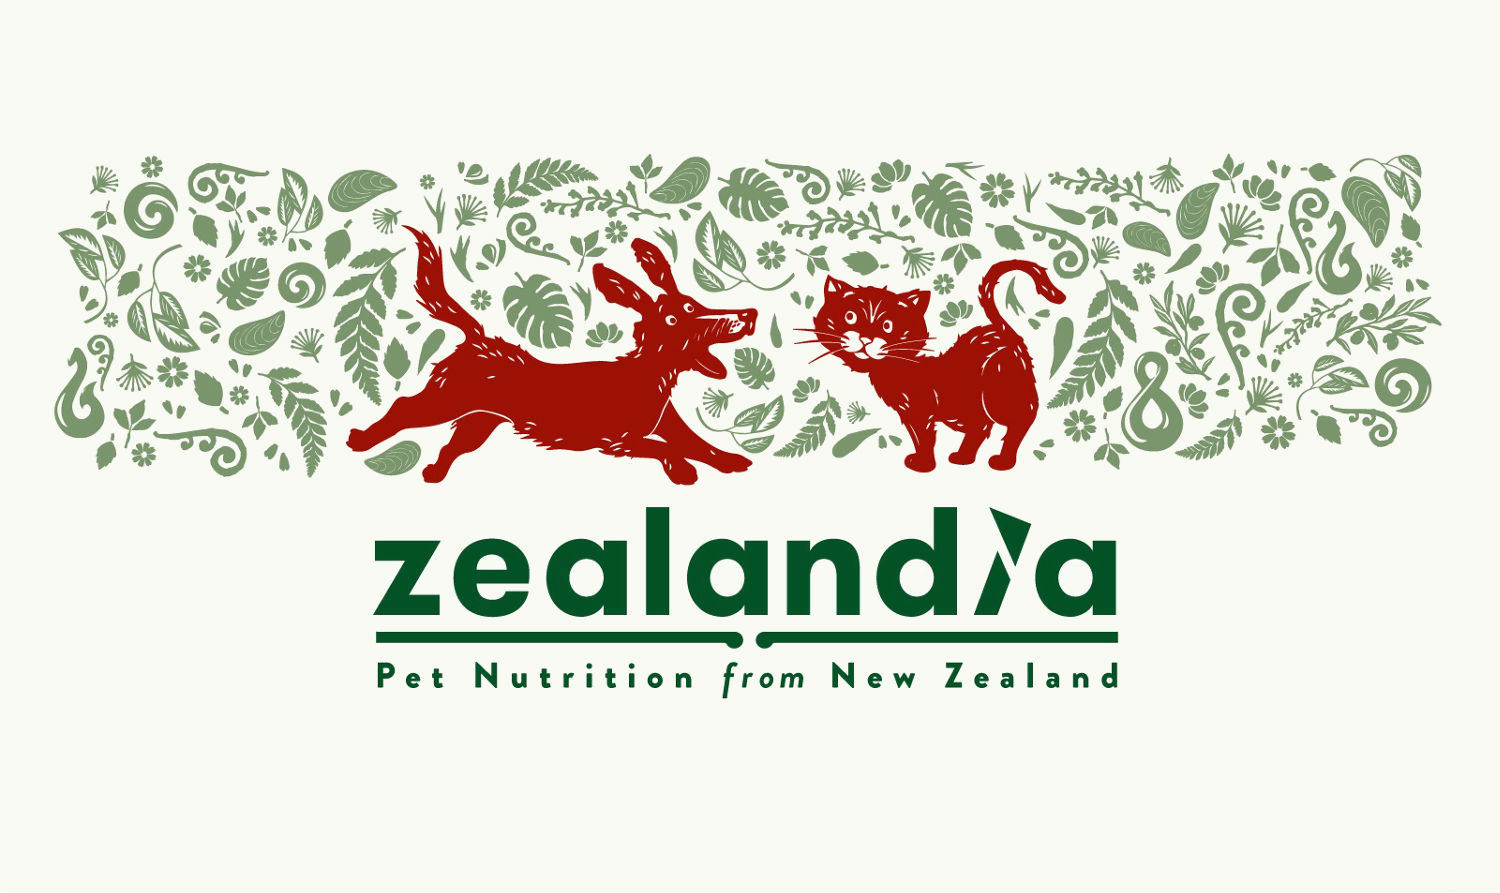 zealandia-dogfood.jpg